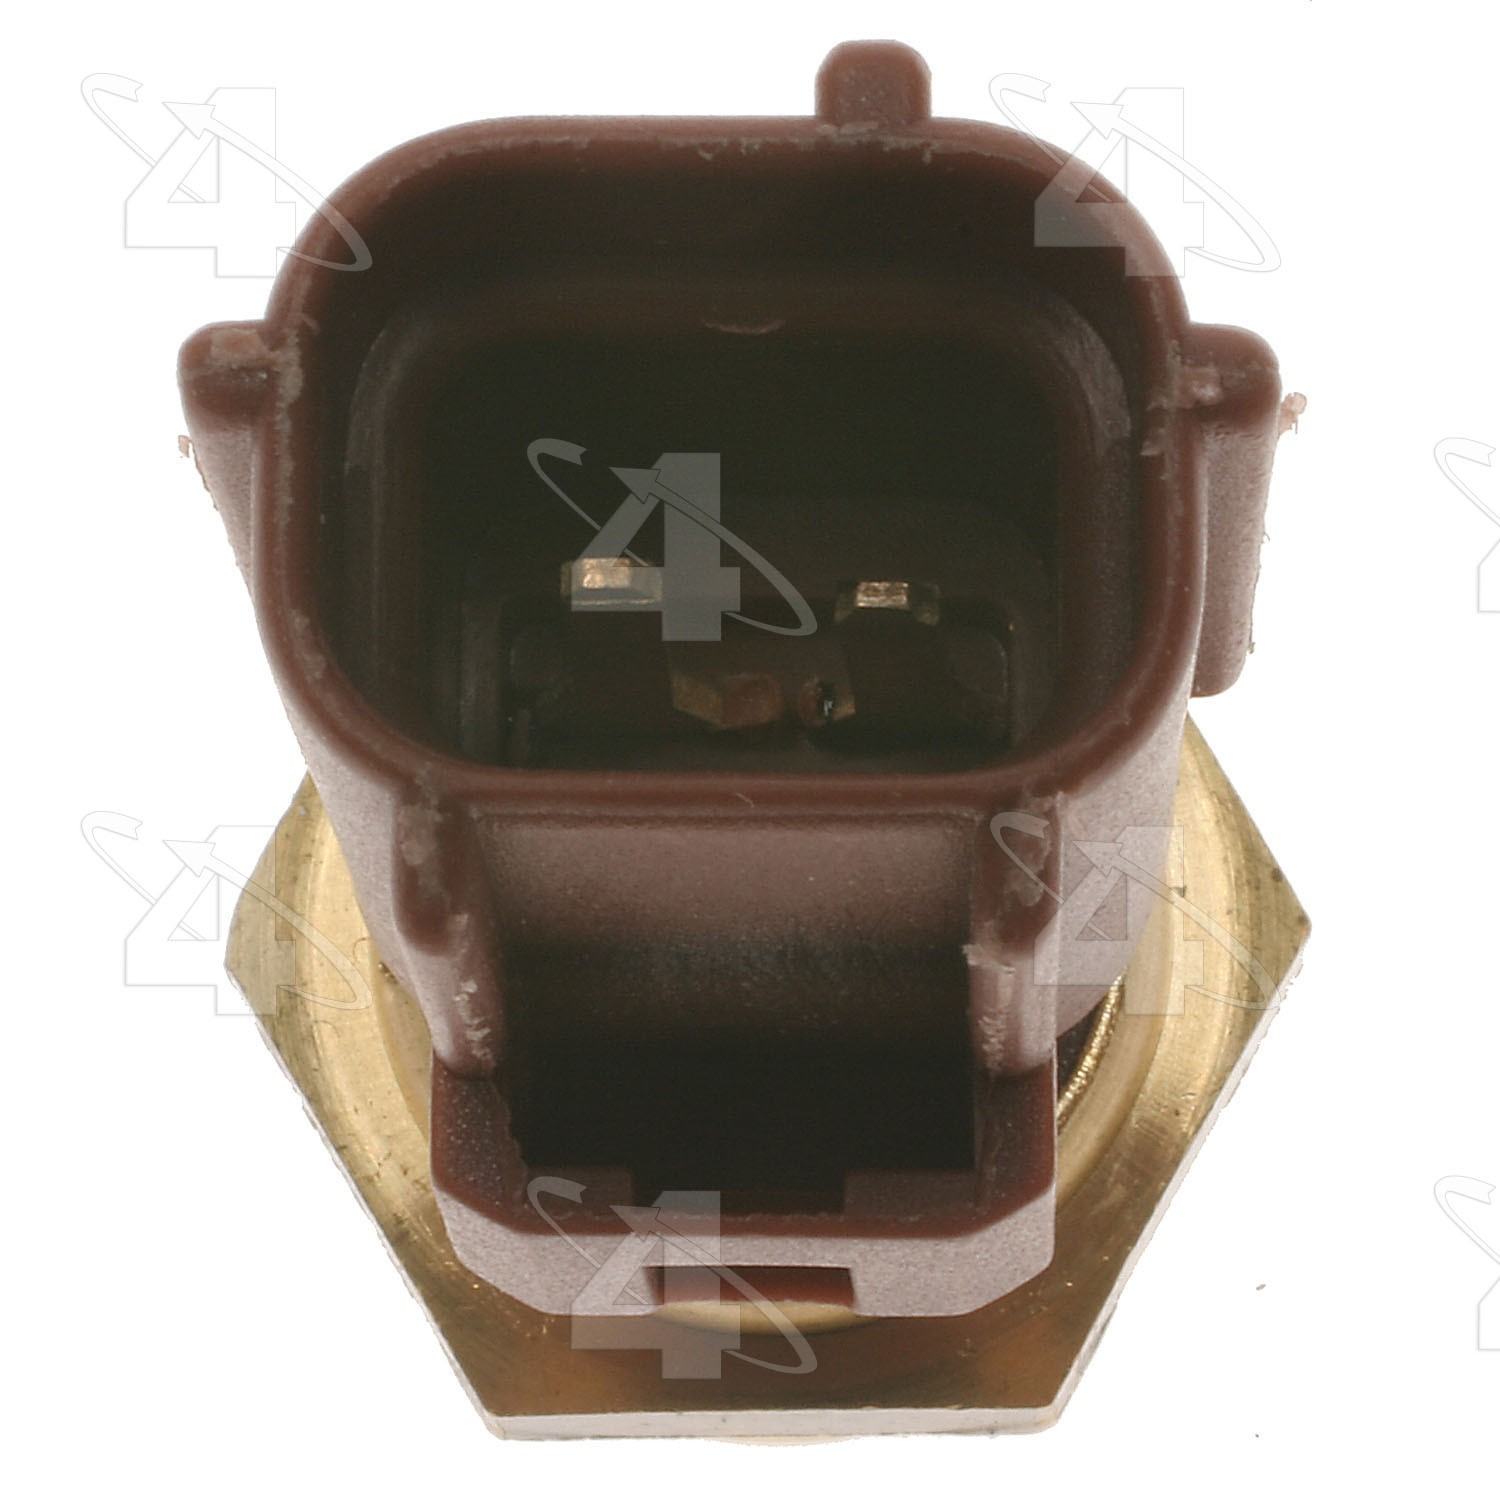 hight resolution of 1999 ford contour engine coolant temperature sender fs 37482